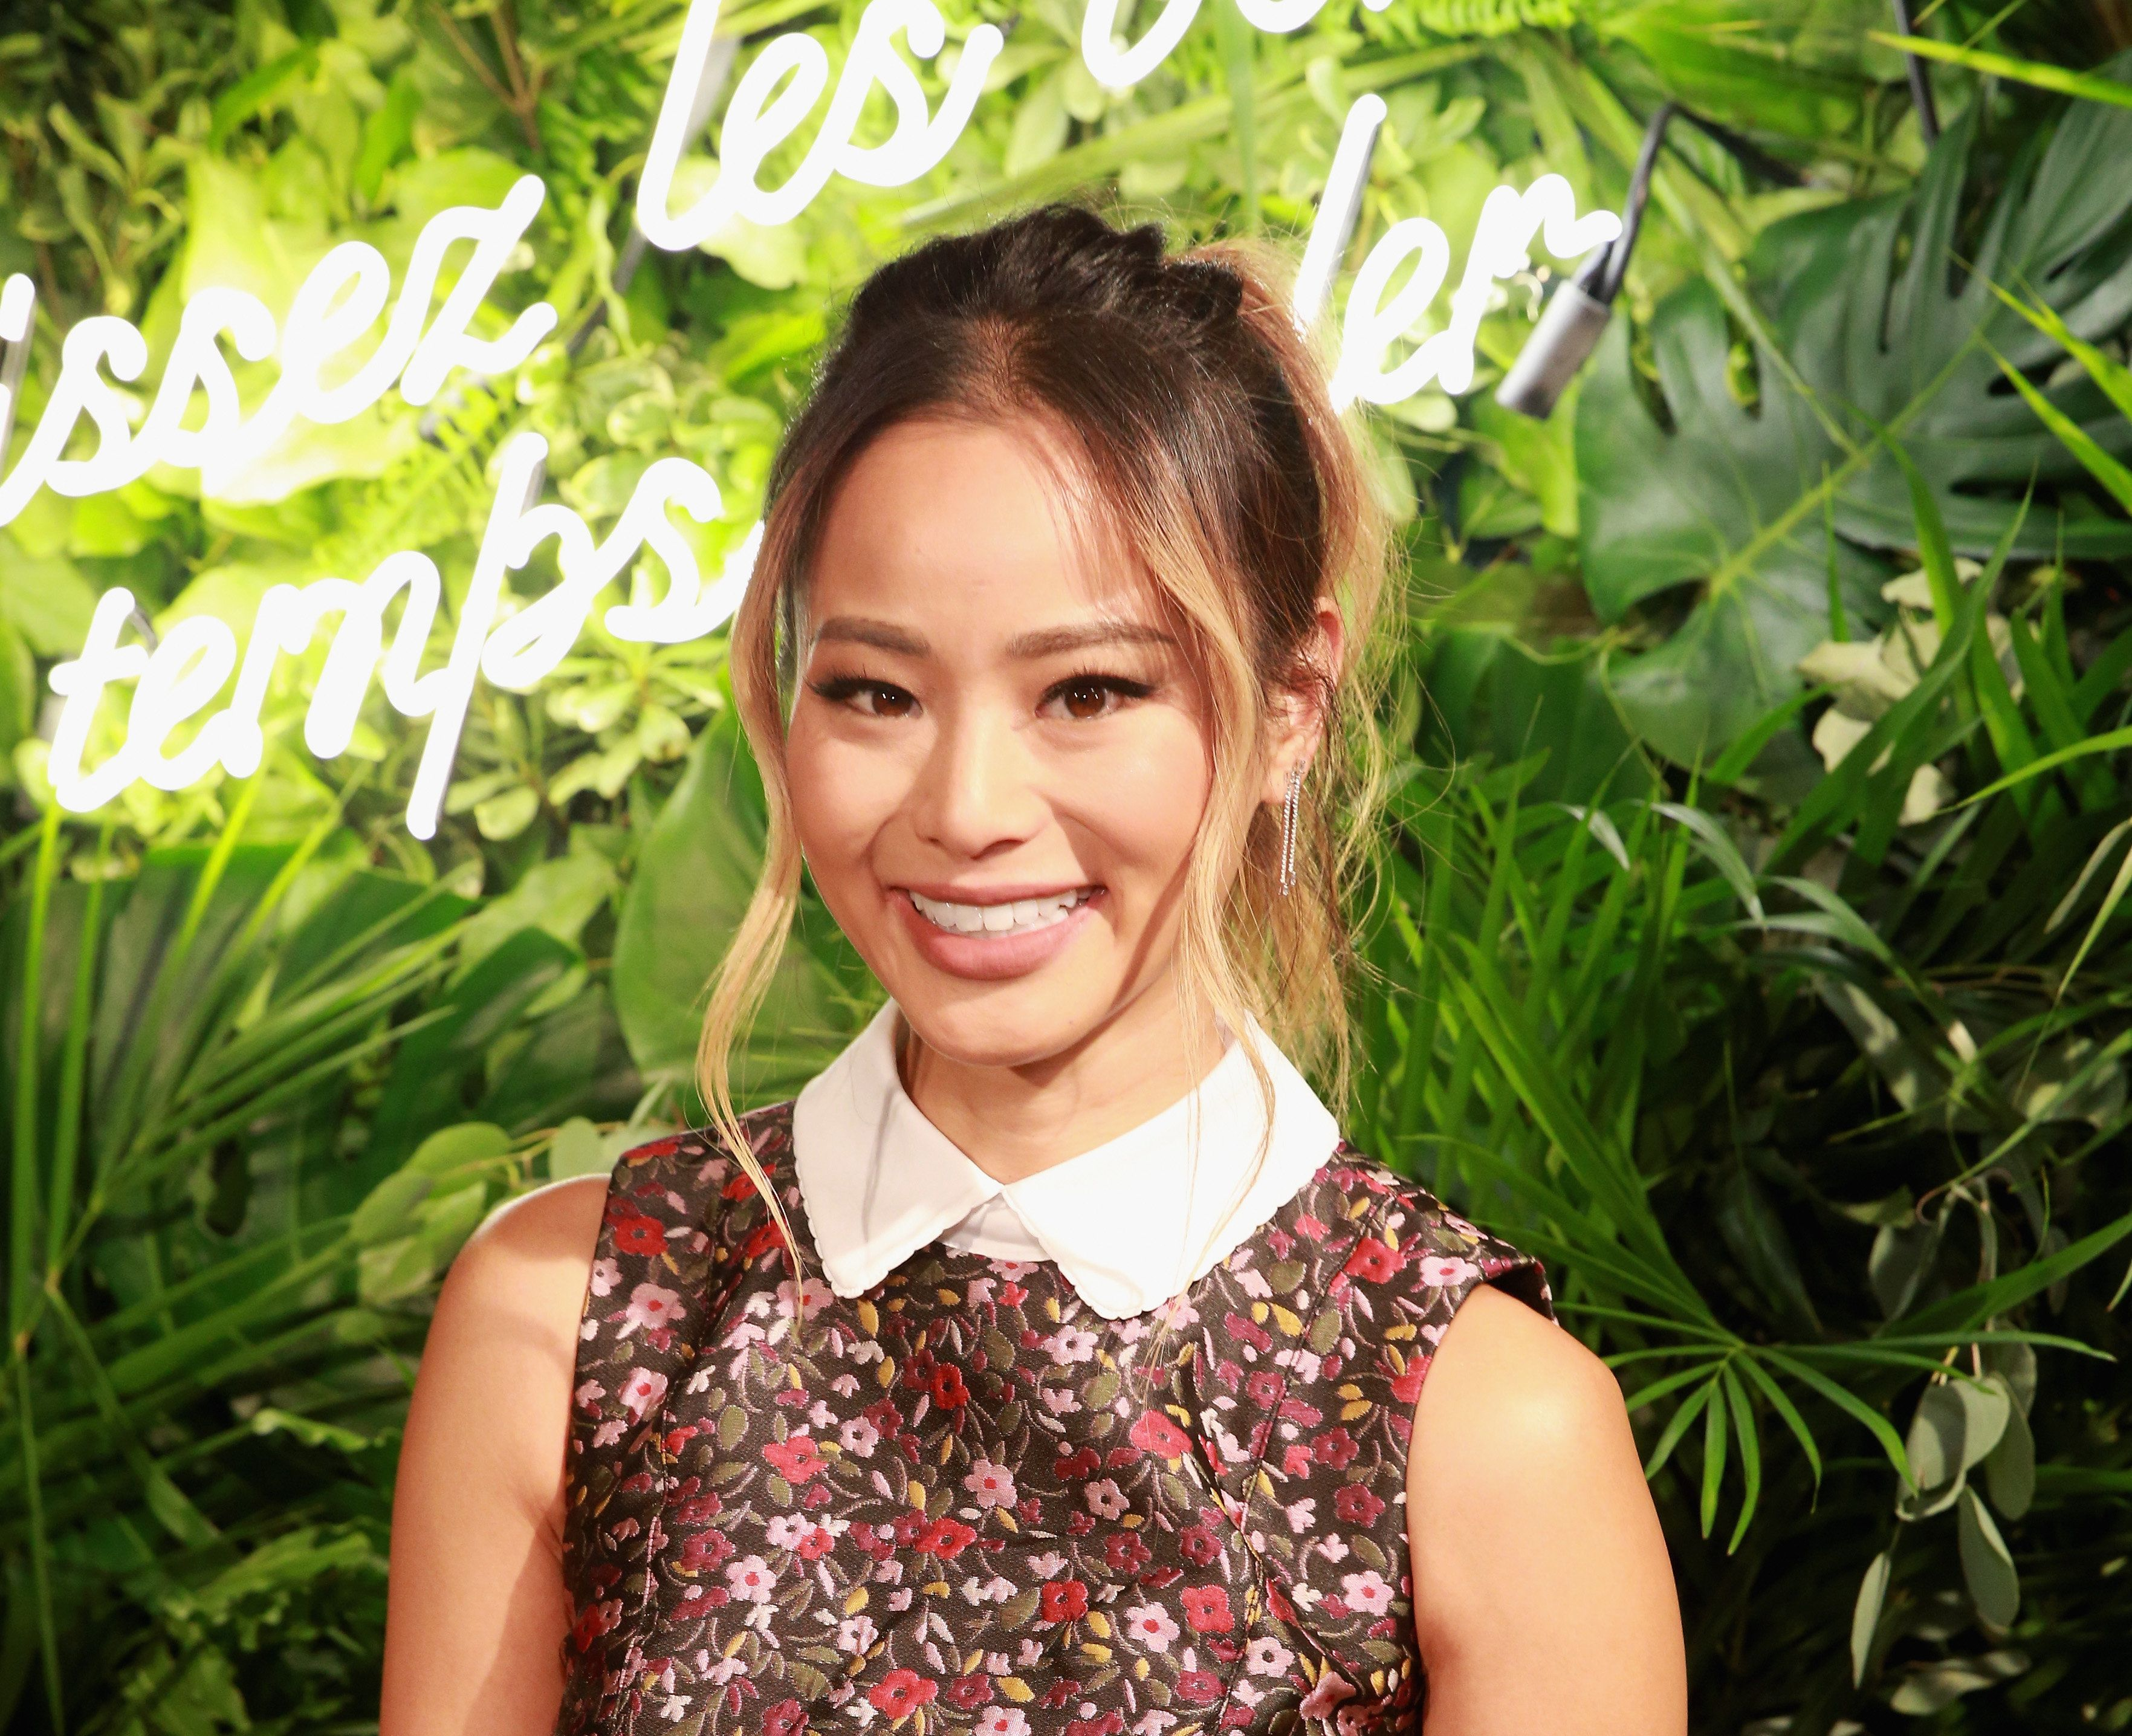 NEW YORK, NY - SEPTEMBER 08:  Jamie Chung attends Kate Spade Presentation during New York Fashion Week on September 8, 2017 in New York City.  (Photo by Robin Marchant/Getty Images)